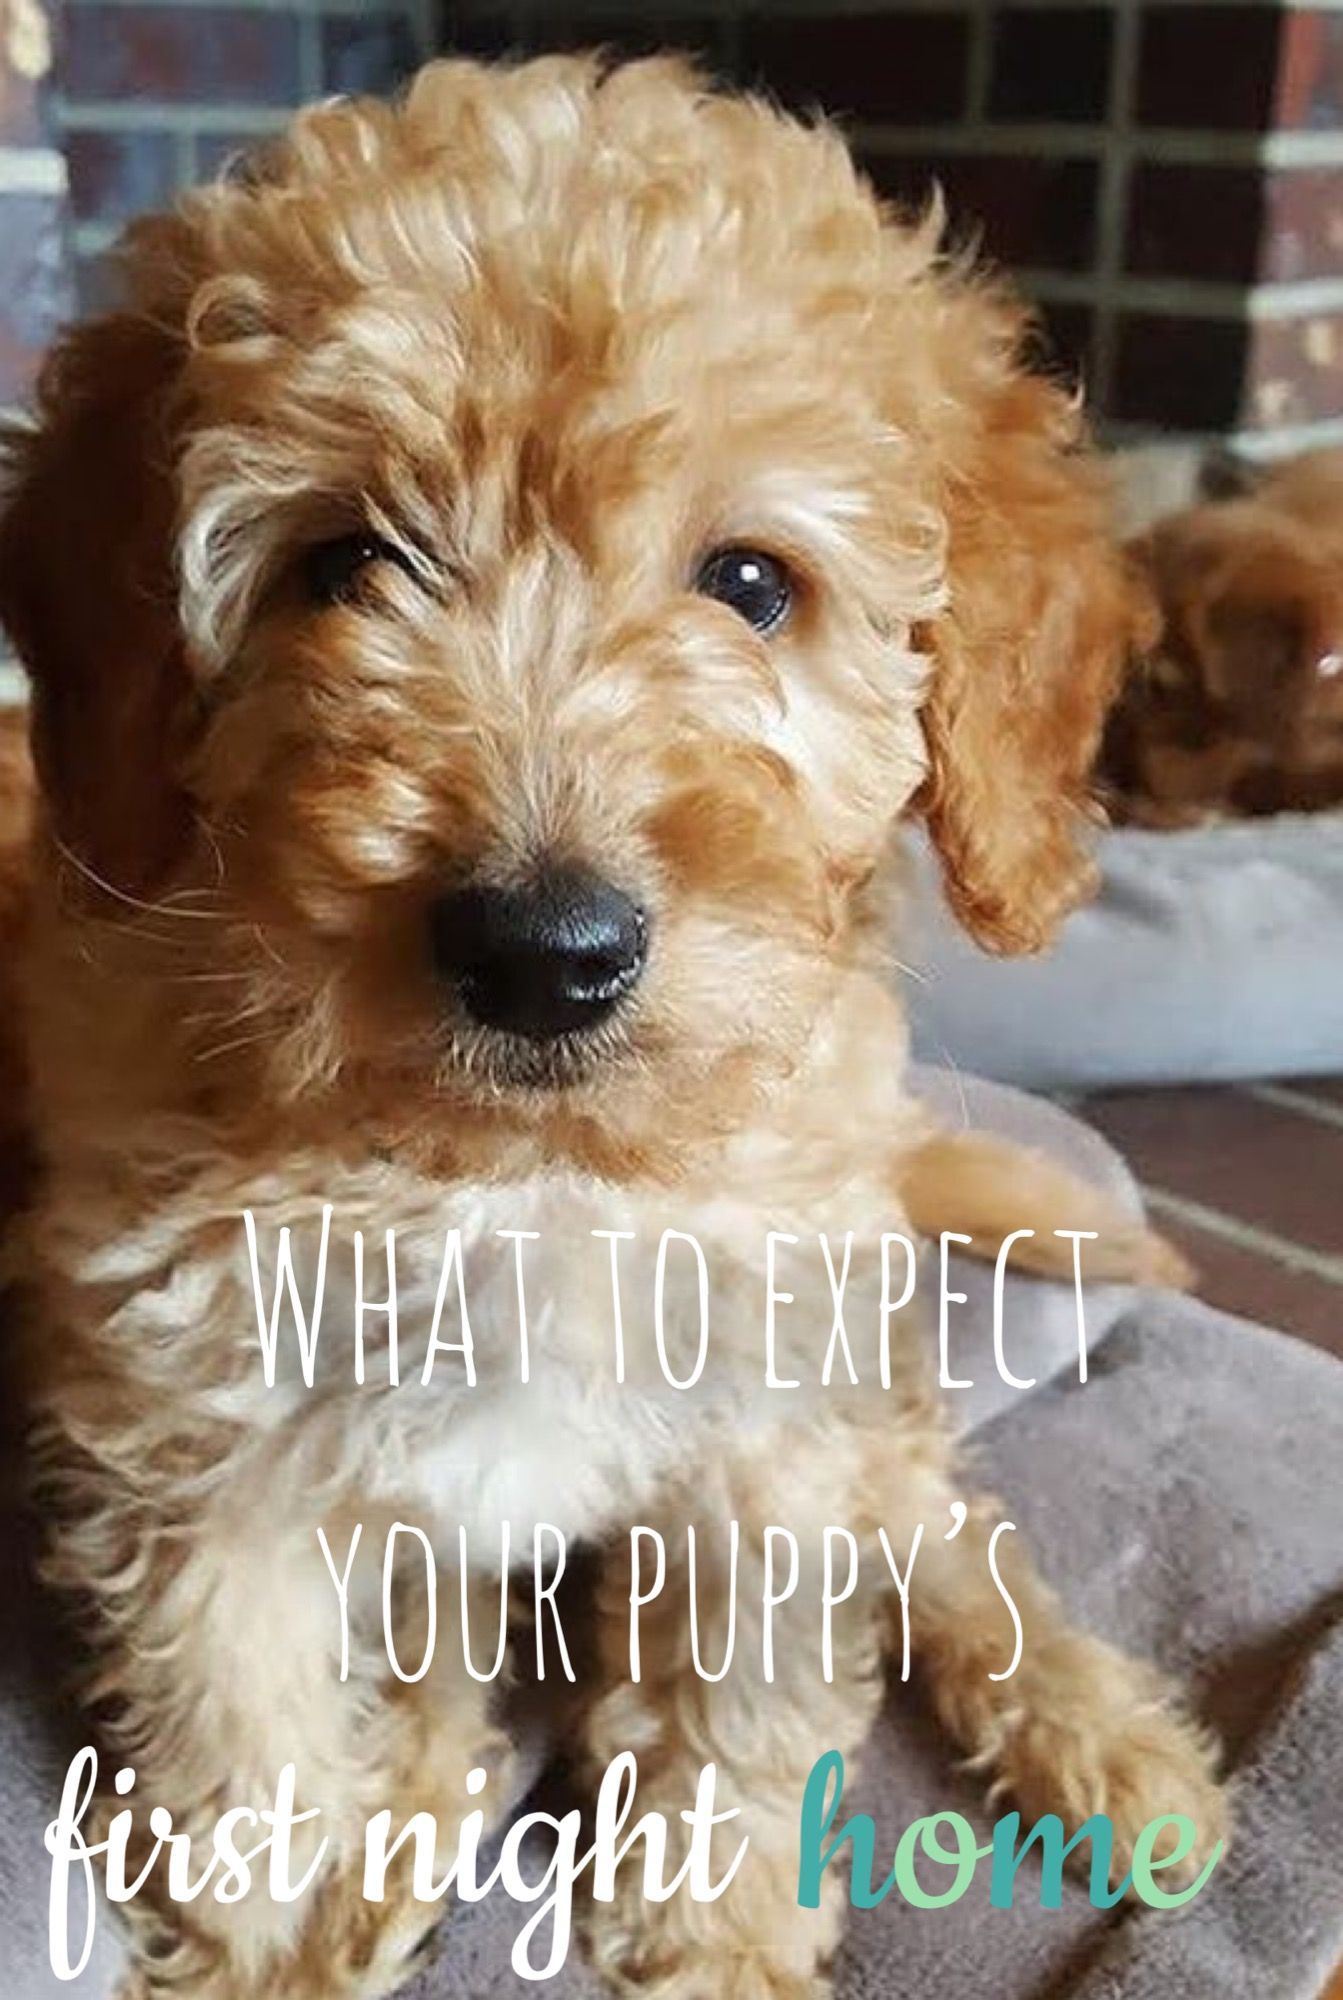 Bringing home your new puppy is an exciting day! You've probably been preparing for your pup in many ways and now your ready to bring them home! My husband and I raise and train premium golde… #newpuppy Bringing home your new puppy is an exciting day! You've probably been preparing for your pup in many ways and now your ready to bring them home! My husband and I raise and train premium golde… #newpuppy